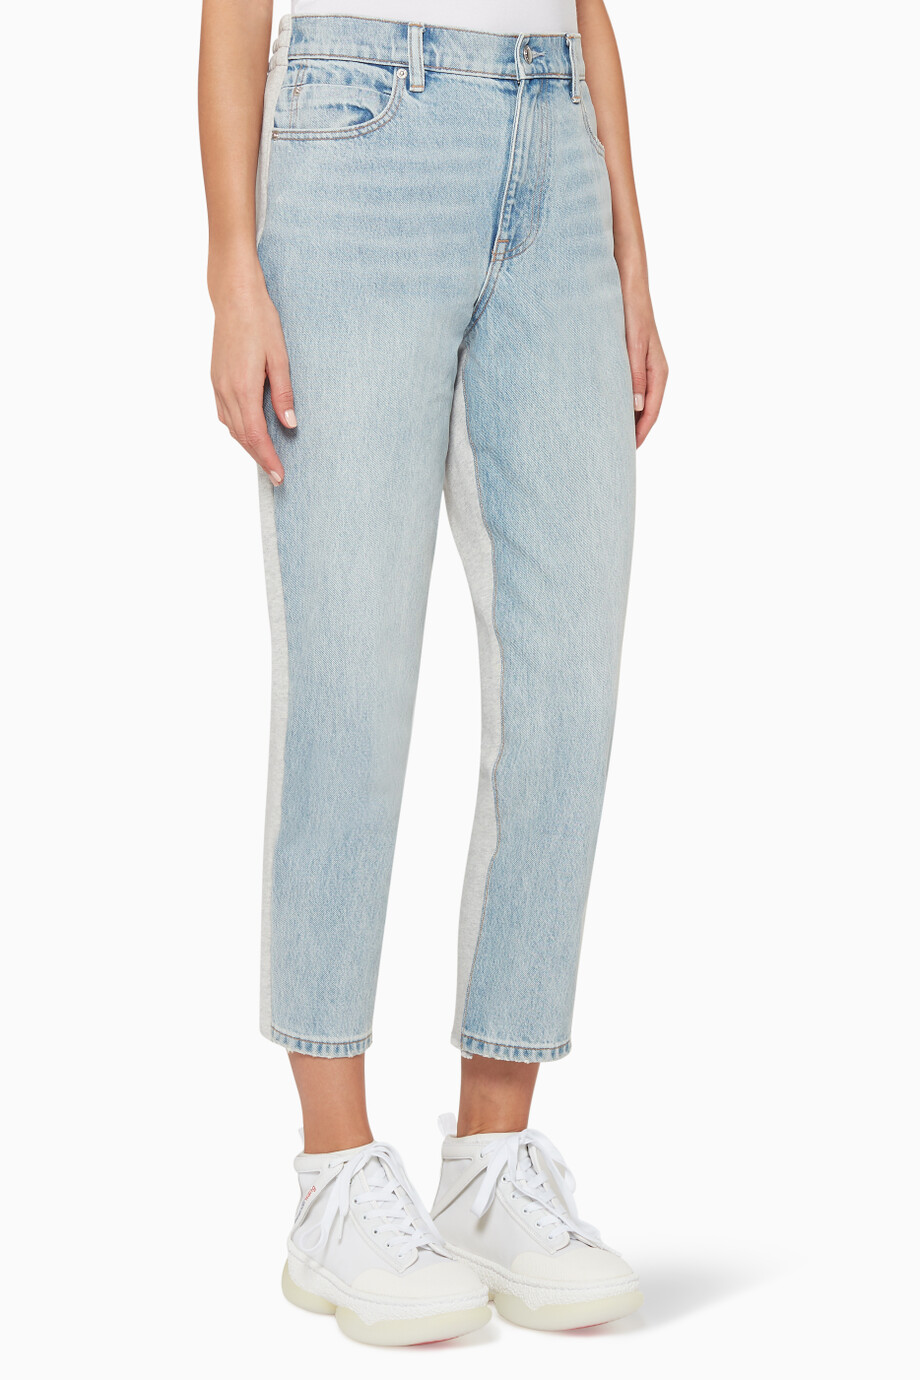 6932a258 Shop Alexander Wang Blue Ride Clash Denim & Cotton Tapered Pants for ...